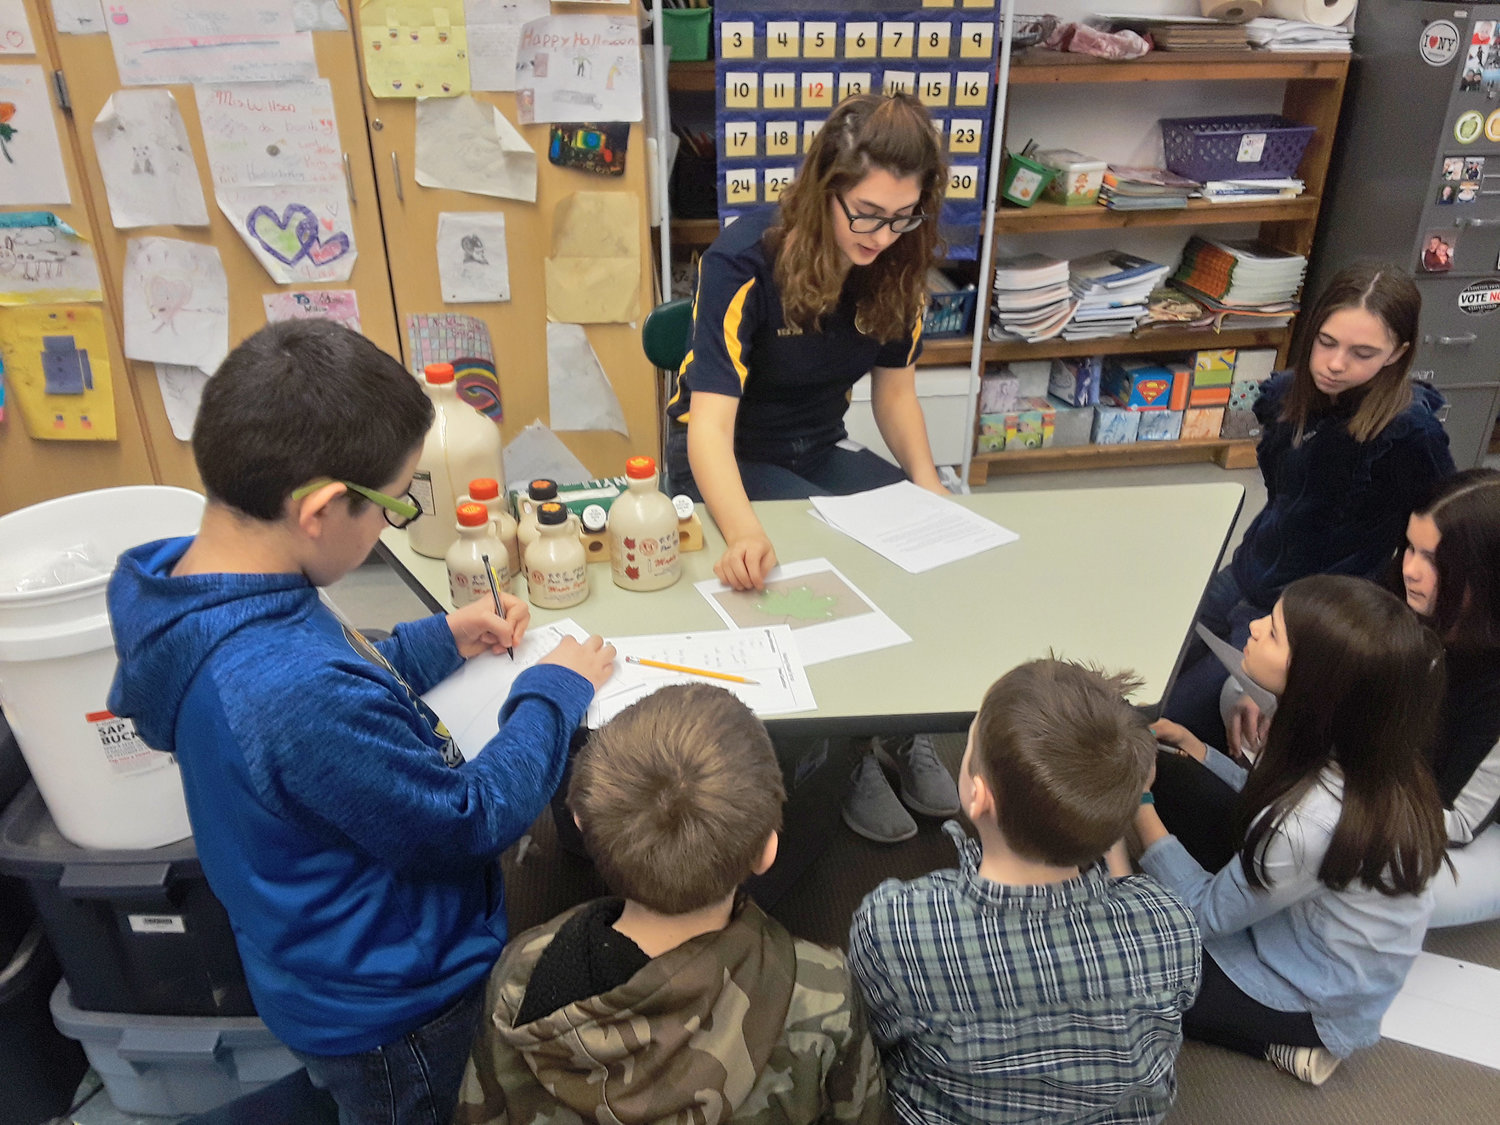 LESSON ON MAPLE TOPICS — Camden Middle School students learn about maple leaf identification from Vernon-Verona-Sherrill FFA student Molly Adams, at center.